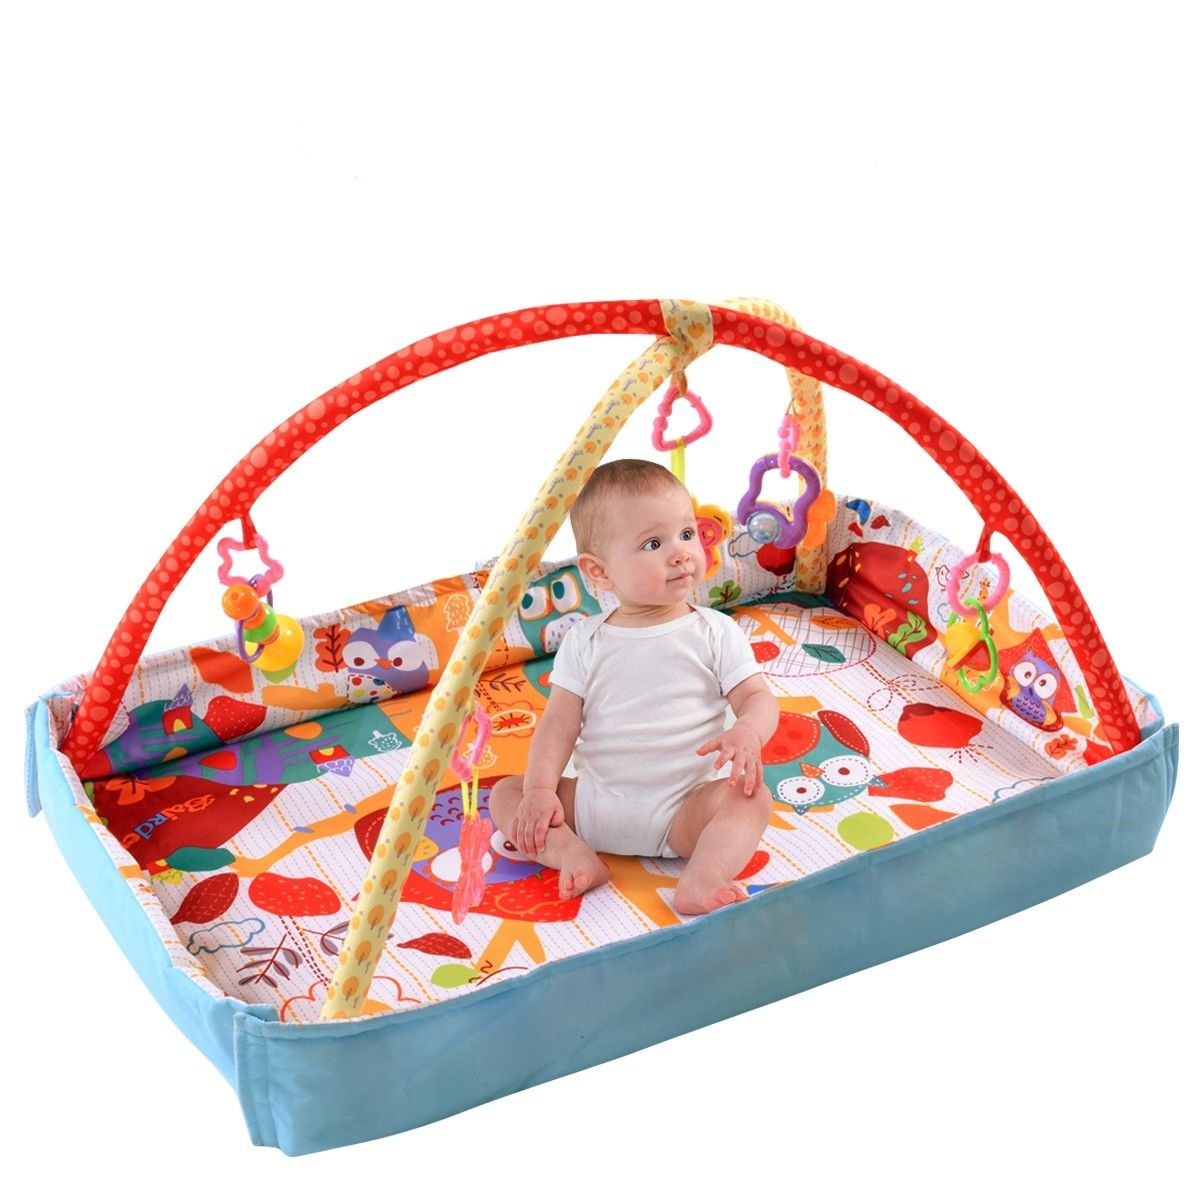 Costway 3 In 1 Multifunctional Baby Infant Activity Gym Play Mat Musical W/Hanging Toys